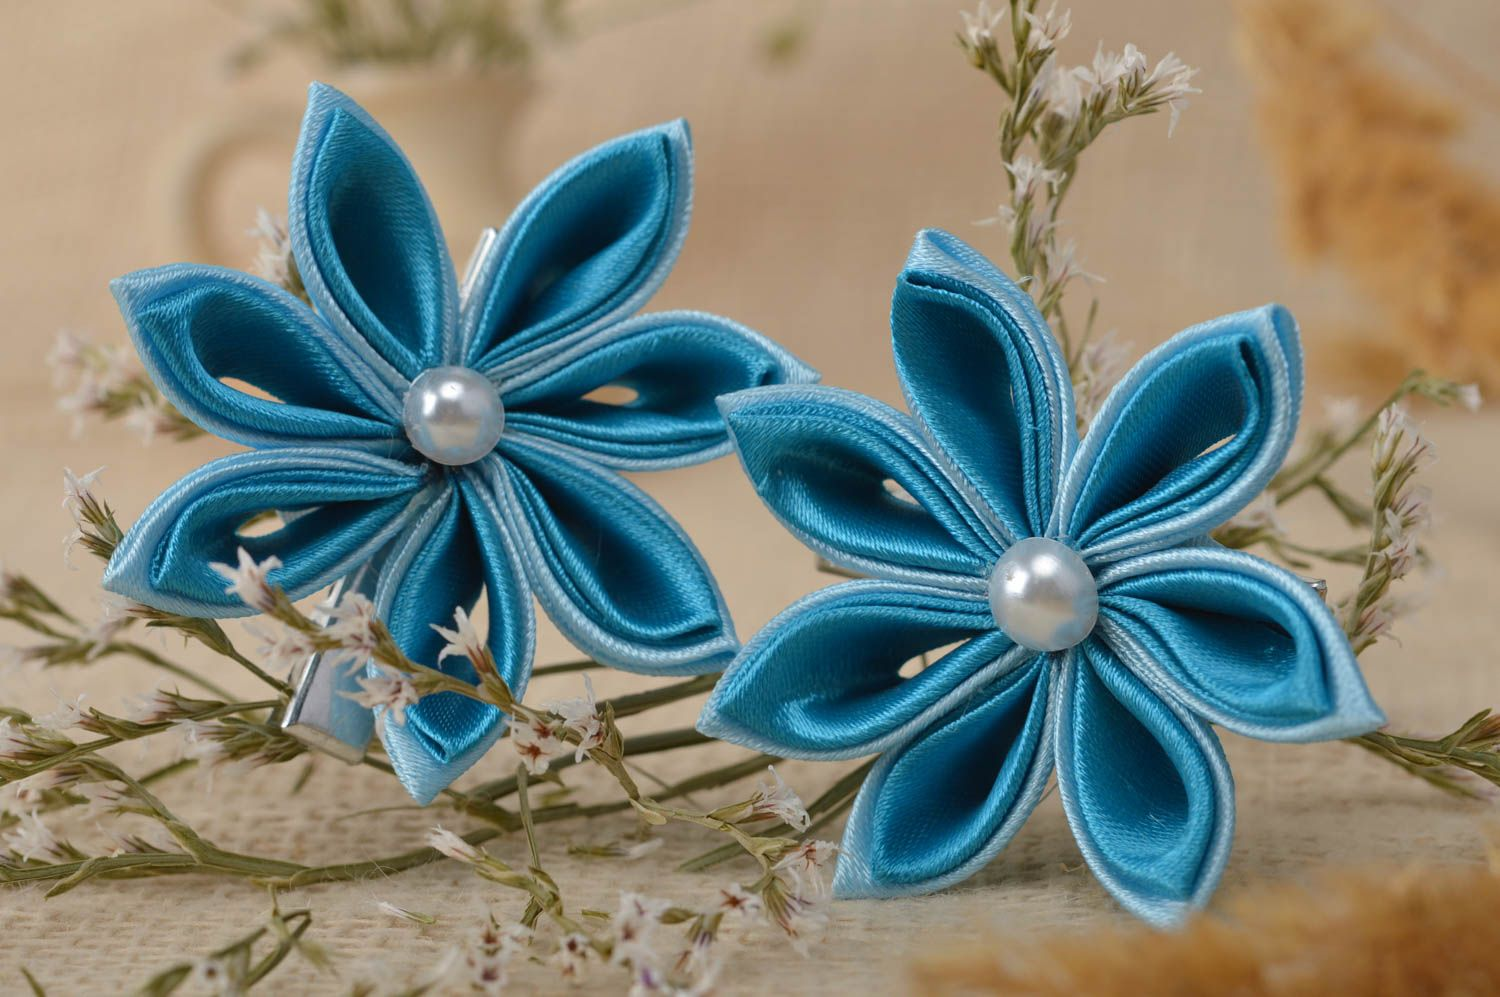 hair clips Handcrafted jewelry set 2 flower hair clips kanzashi flowers gifts for kids - MADEheart.com